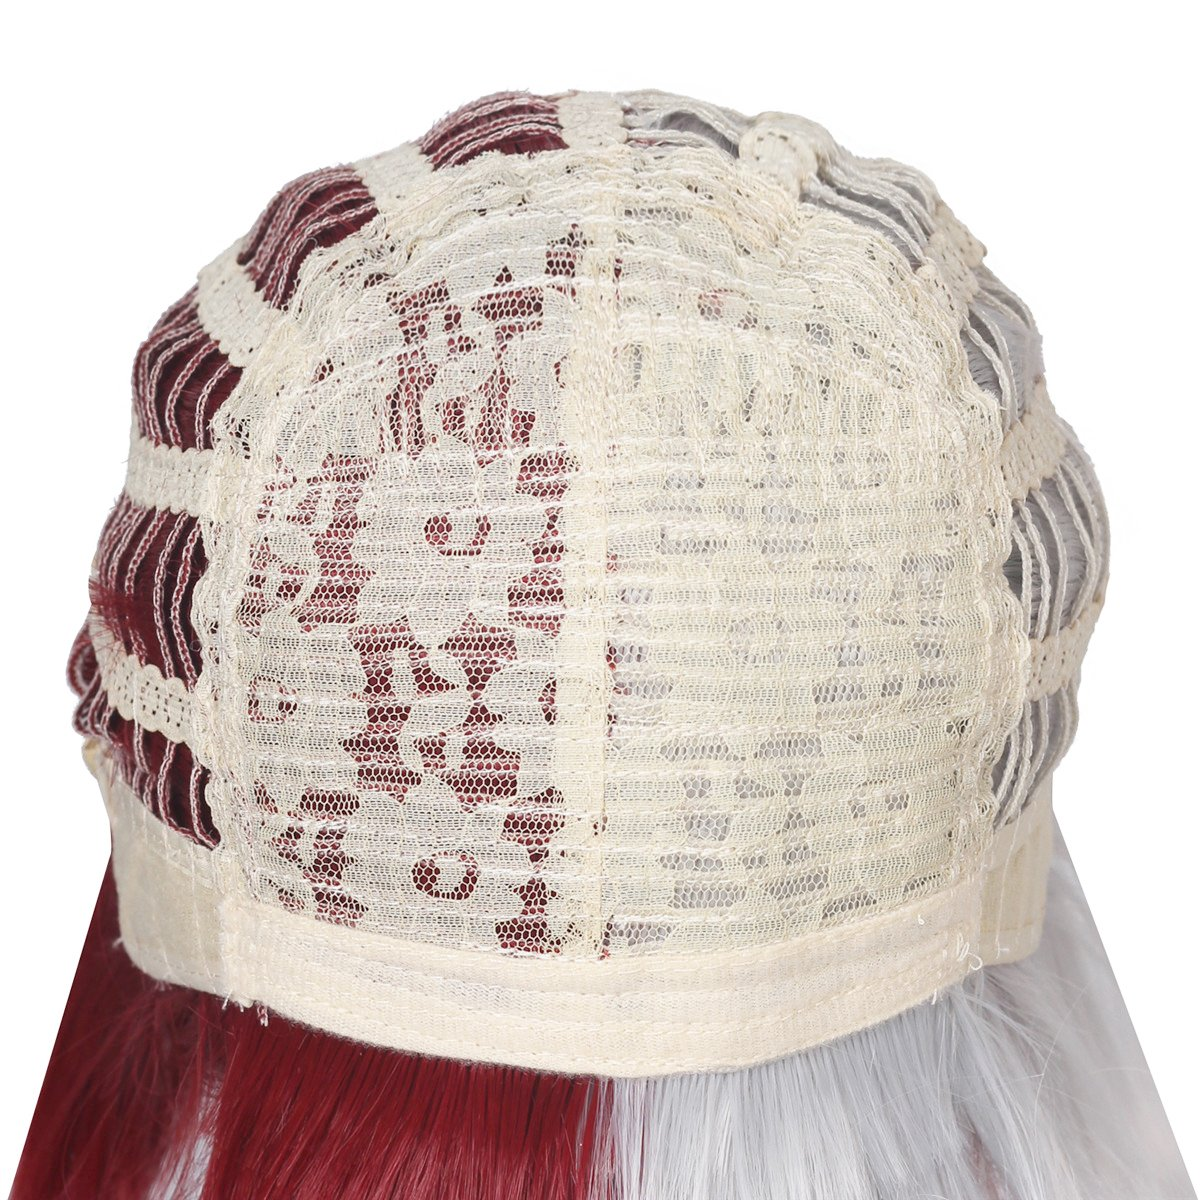 ColorGround Half Silver White Half Red Cosplay Wig for Halloween